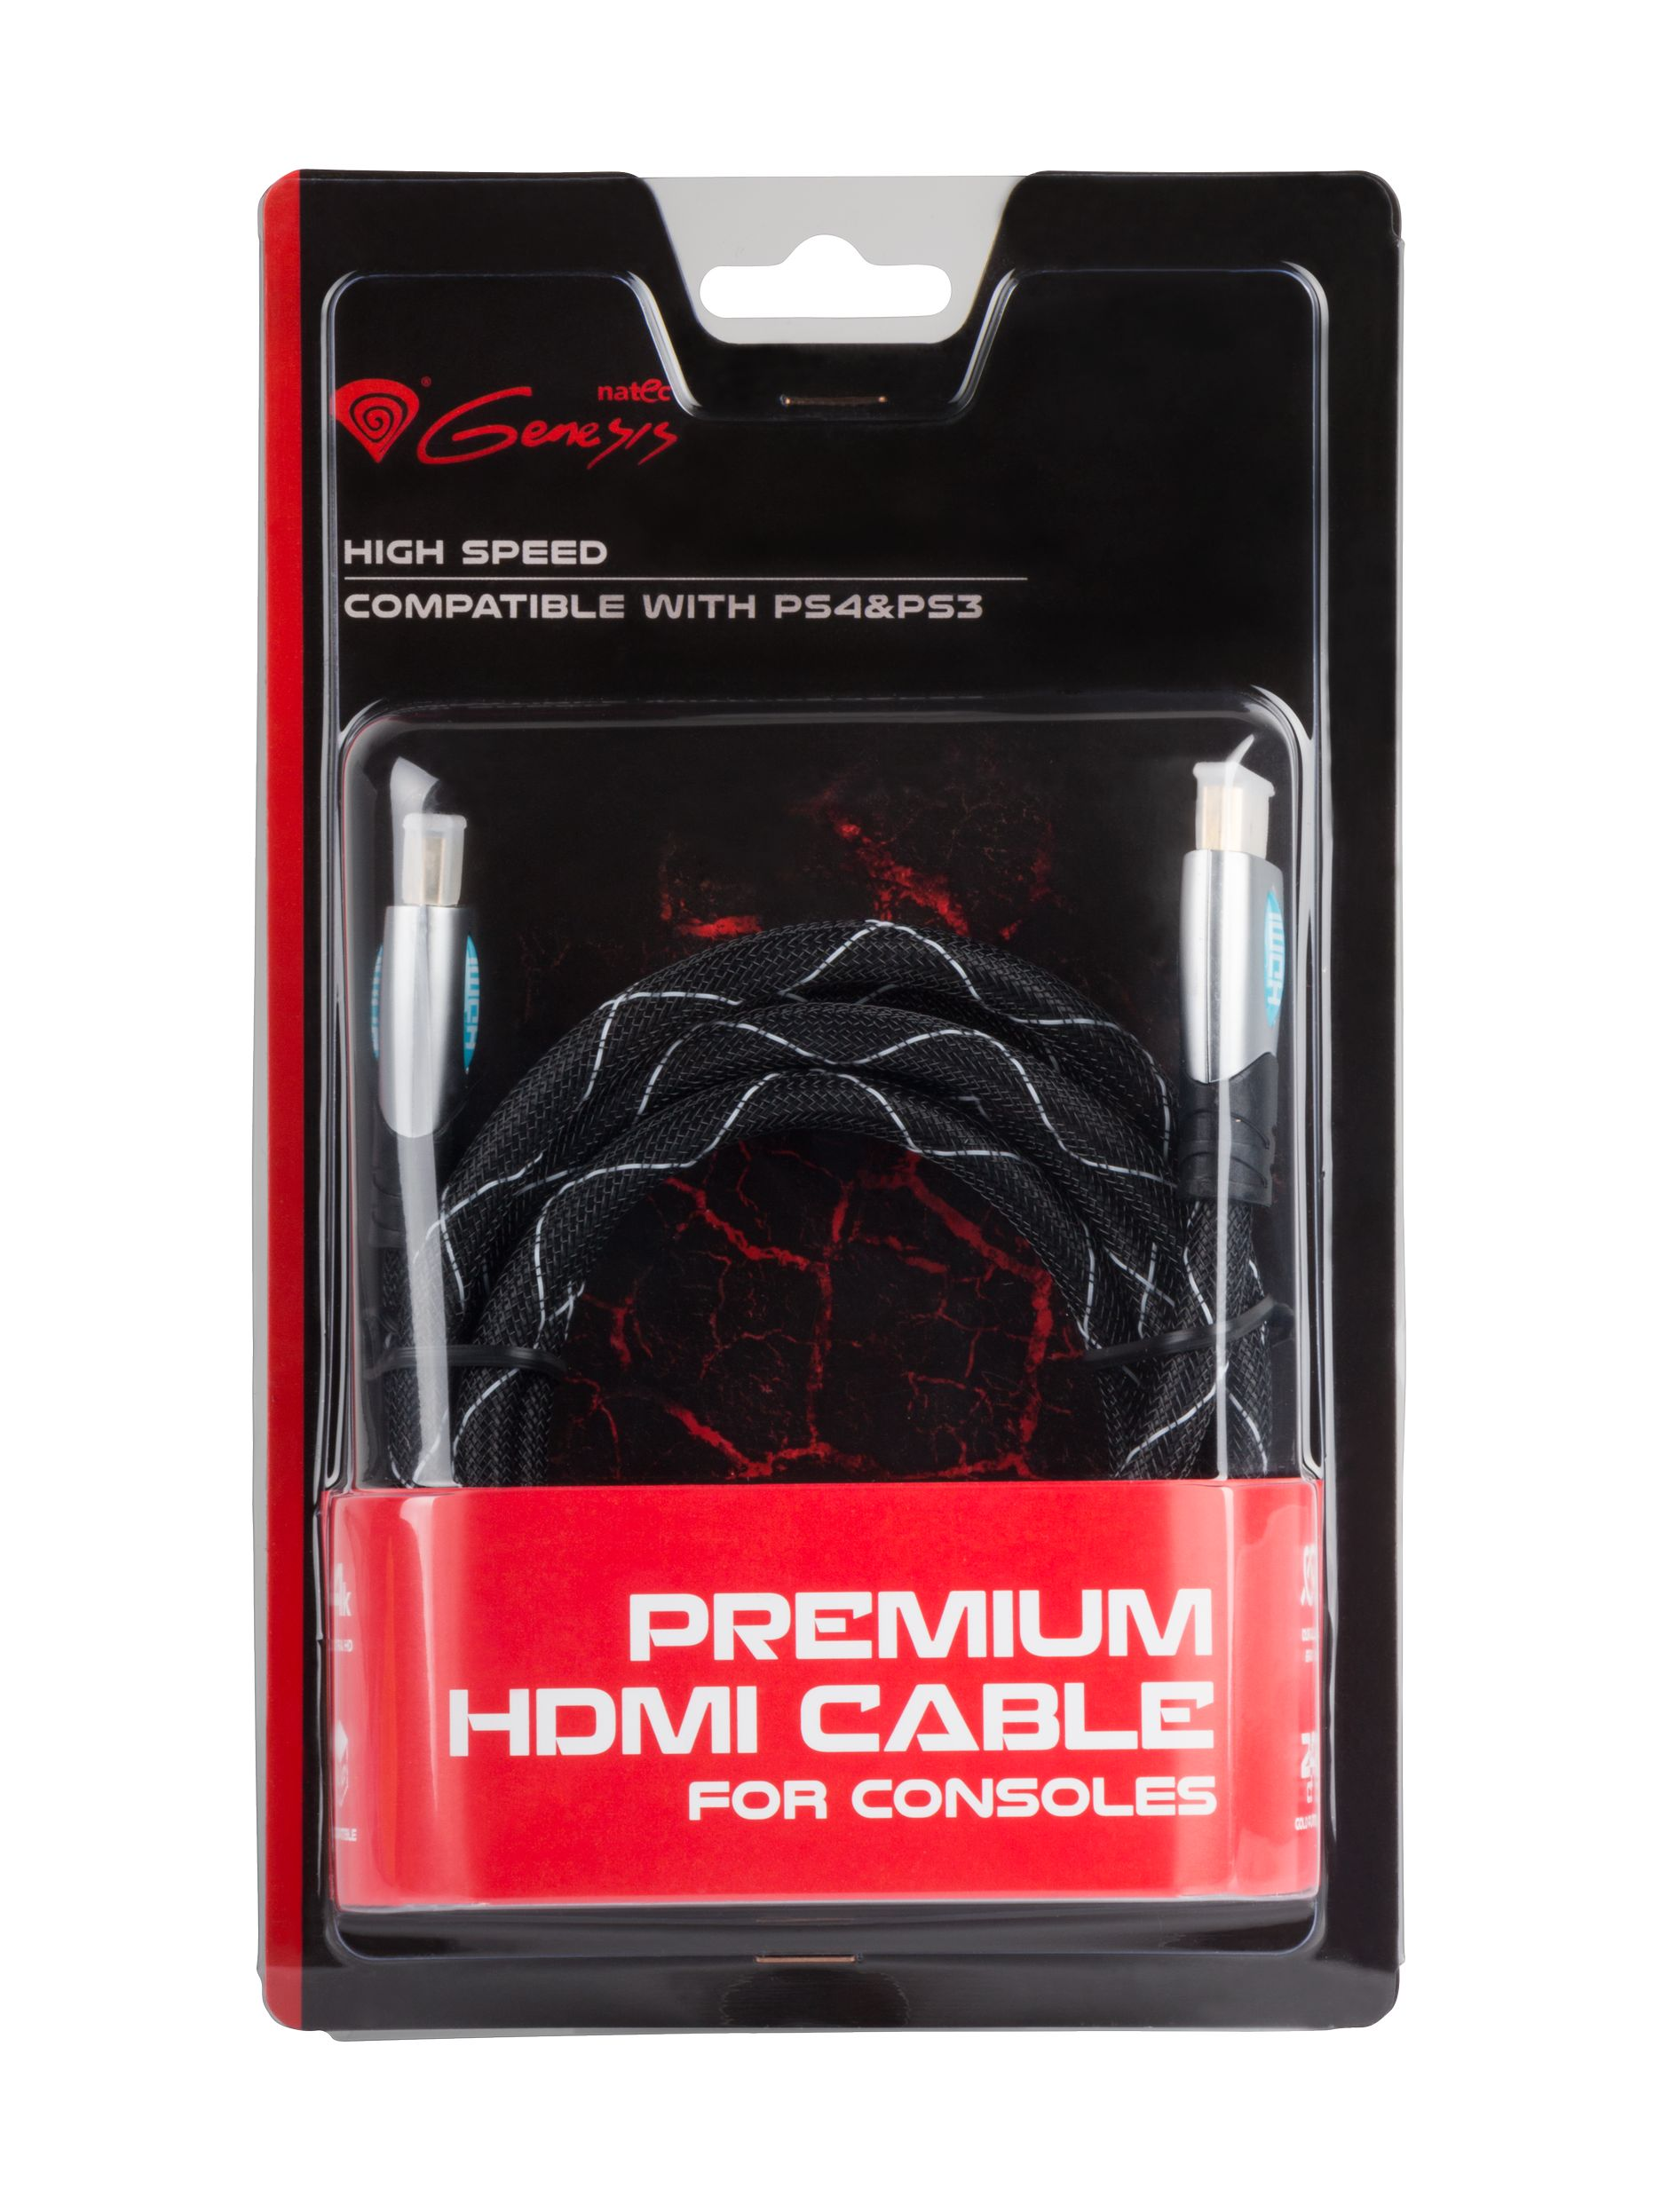 Genesis cable HDMI - HDMI v1.4 High Speed PS3/PS4 1.8M Premium